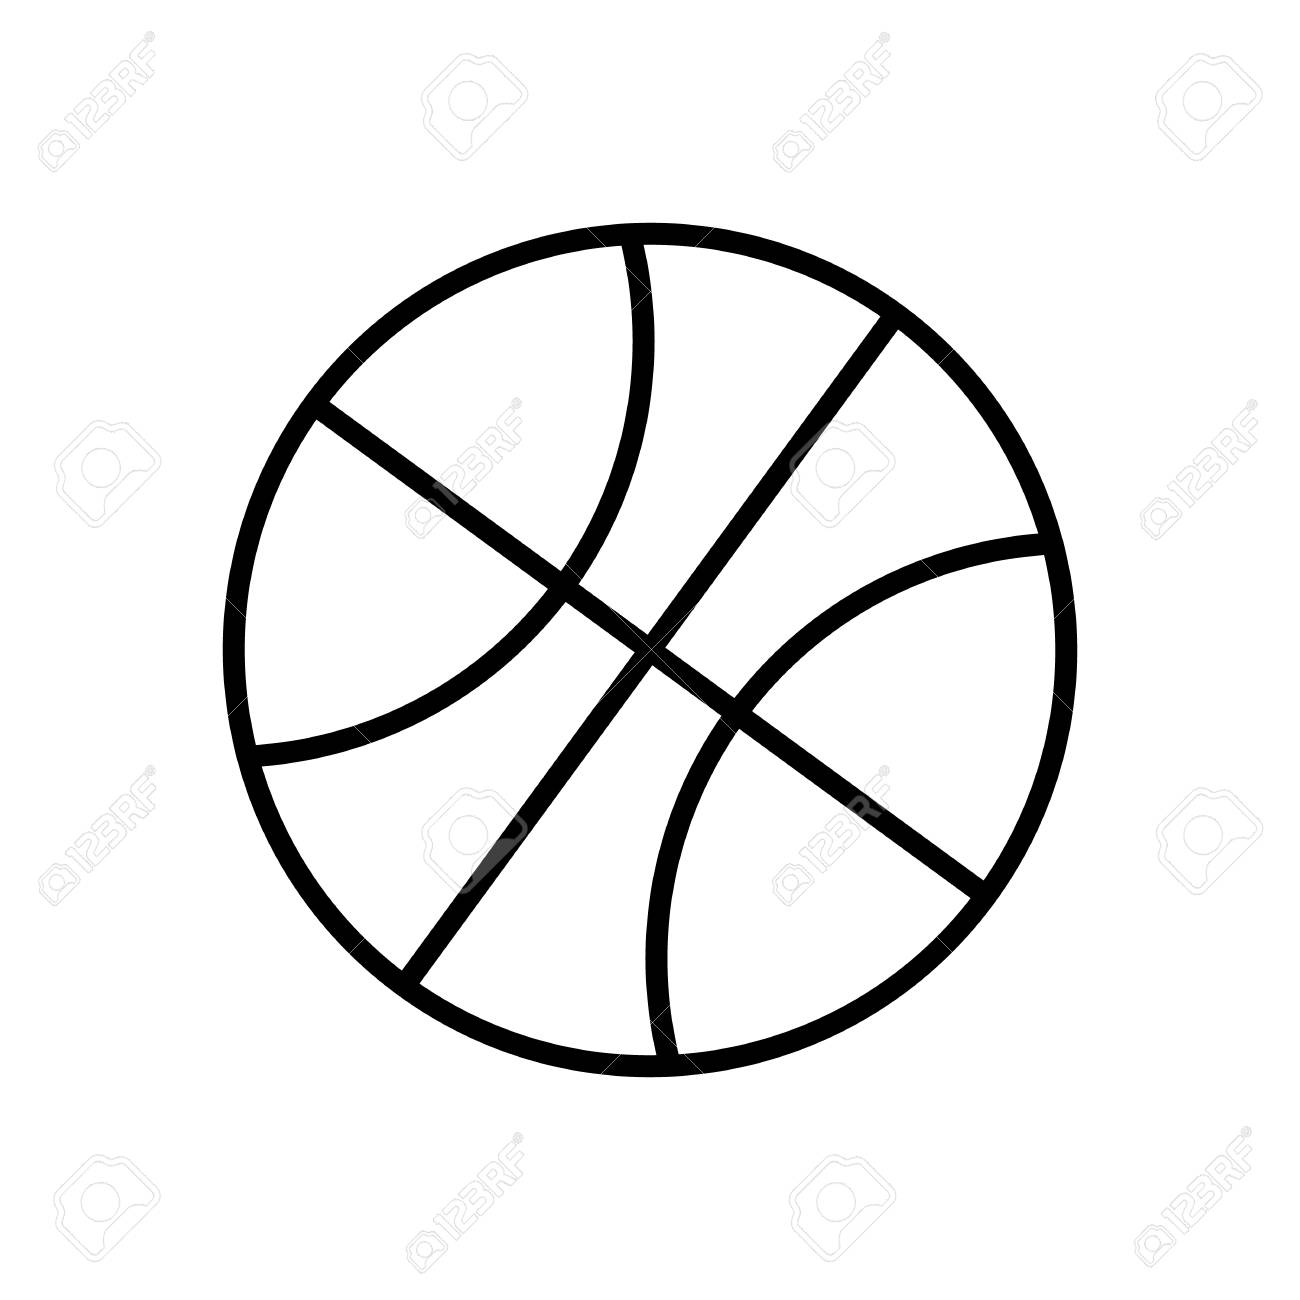 Basketball Ball Drawing at GetDrawings com Free for